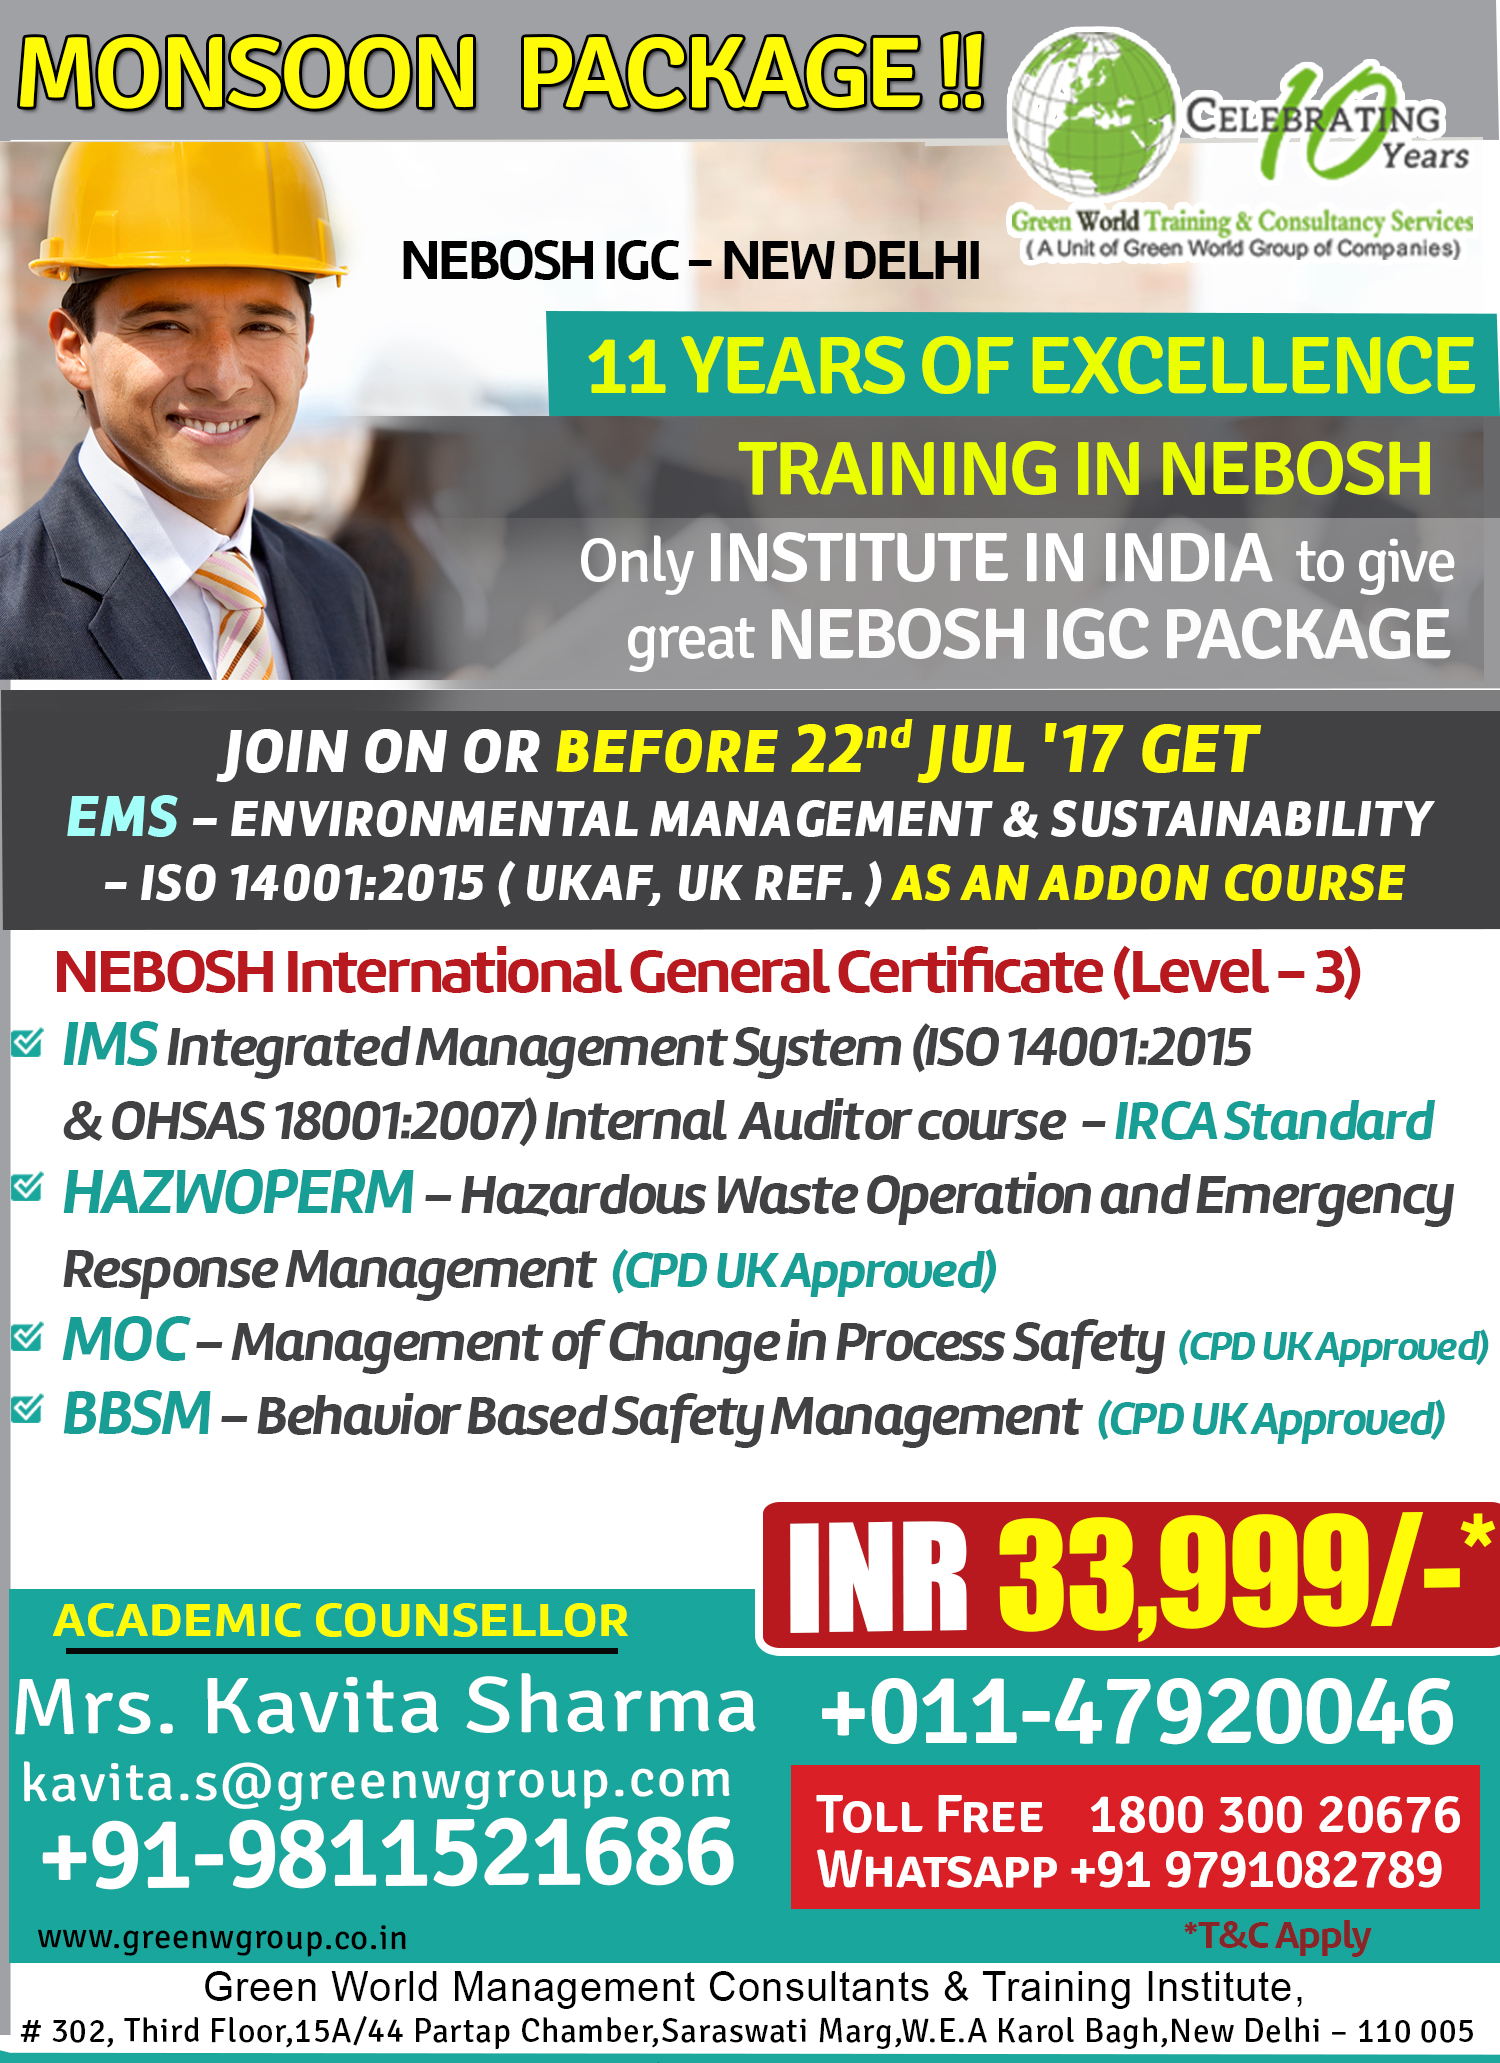 Nebosh course in new delhi combo offer neboshioshhabc fire nebosh course in new delhi combo offer neboshioshhabc fire safety 29899 inr first time in india xflitez Choice Image